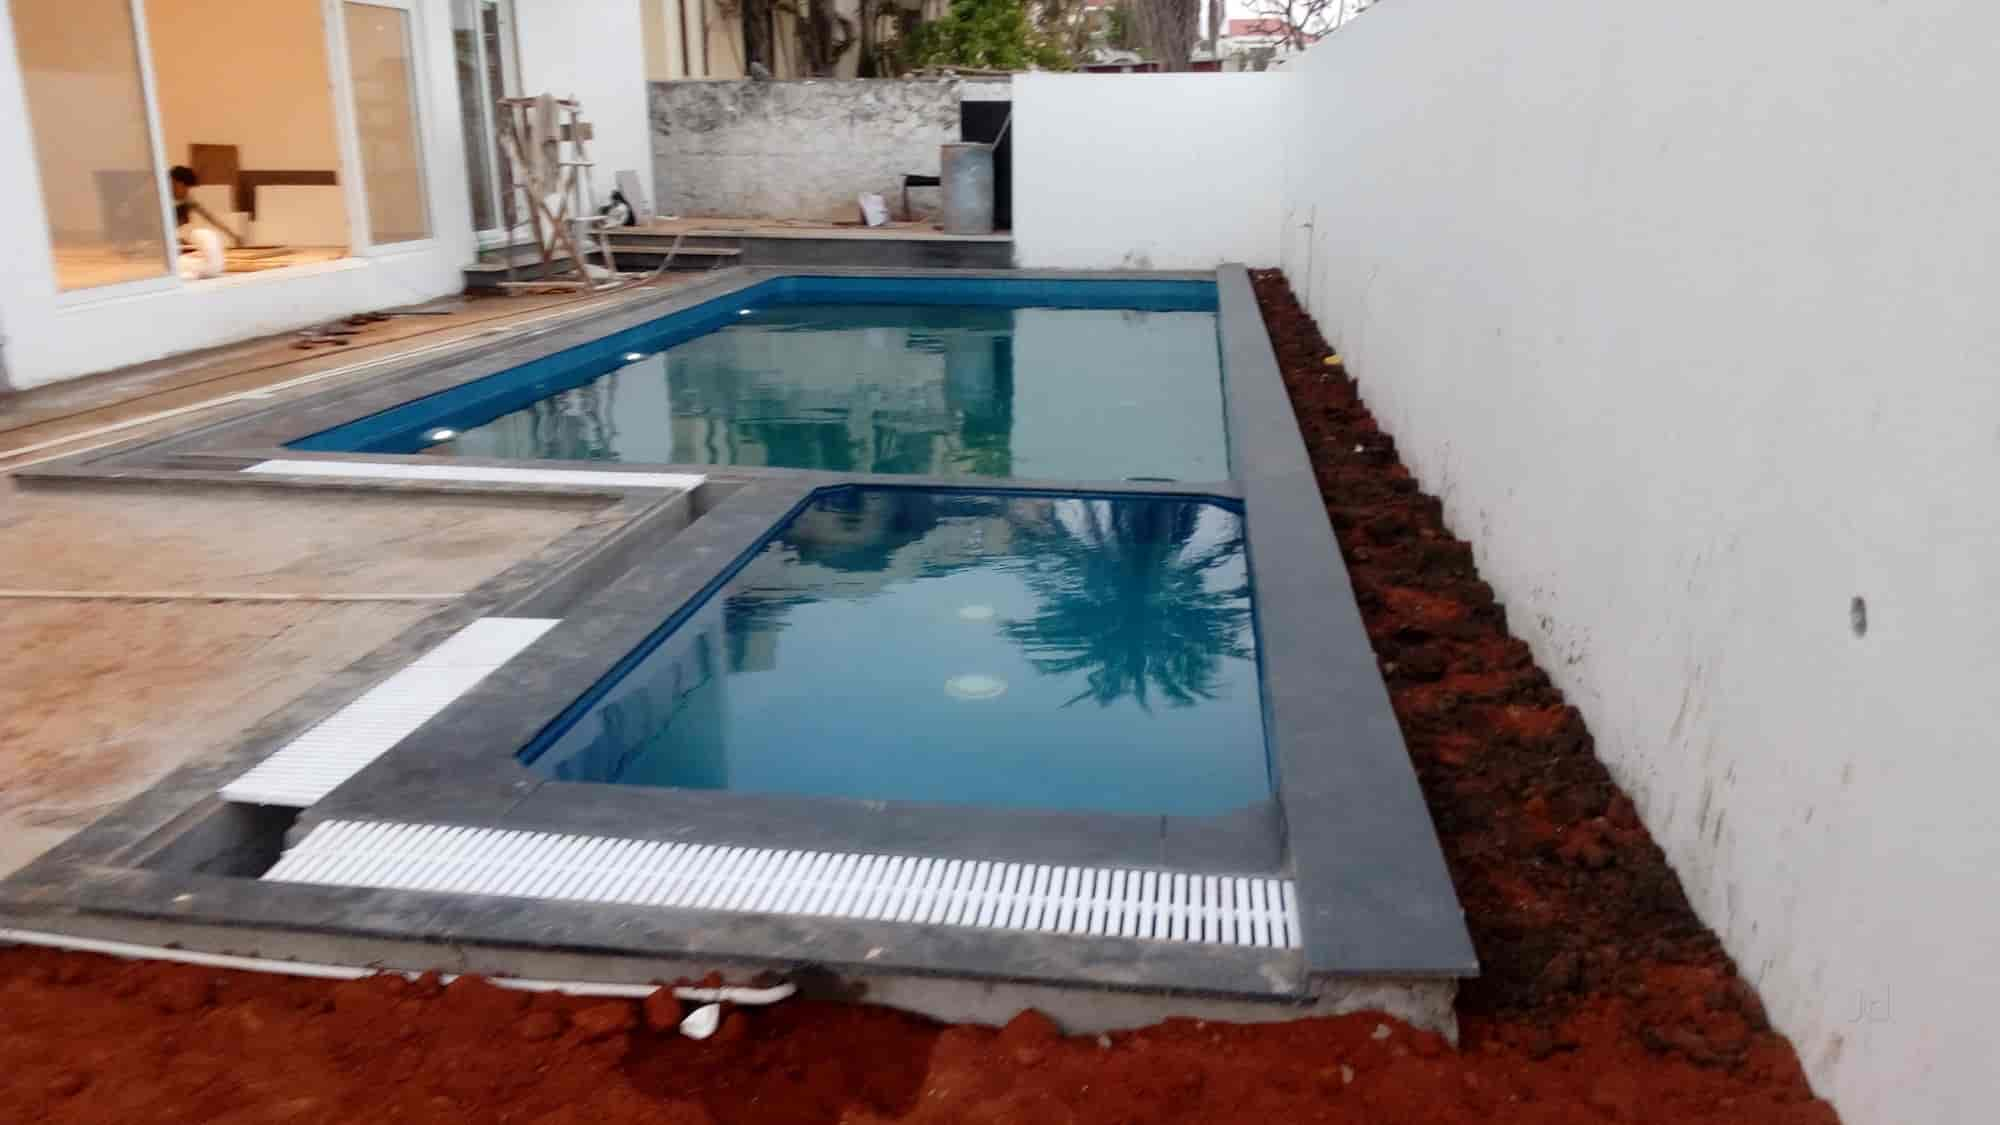 Designer Pools And Spa, Madhavaram Milk Colony   Designer Pools U0026 Spa    Swimming Pool Construction Contractors In Chennai   Justdial